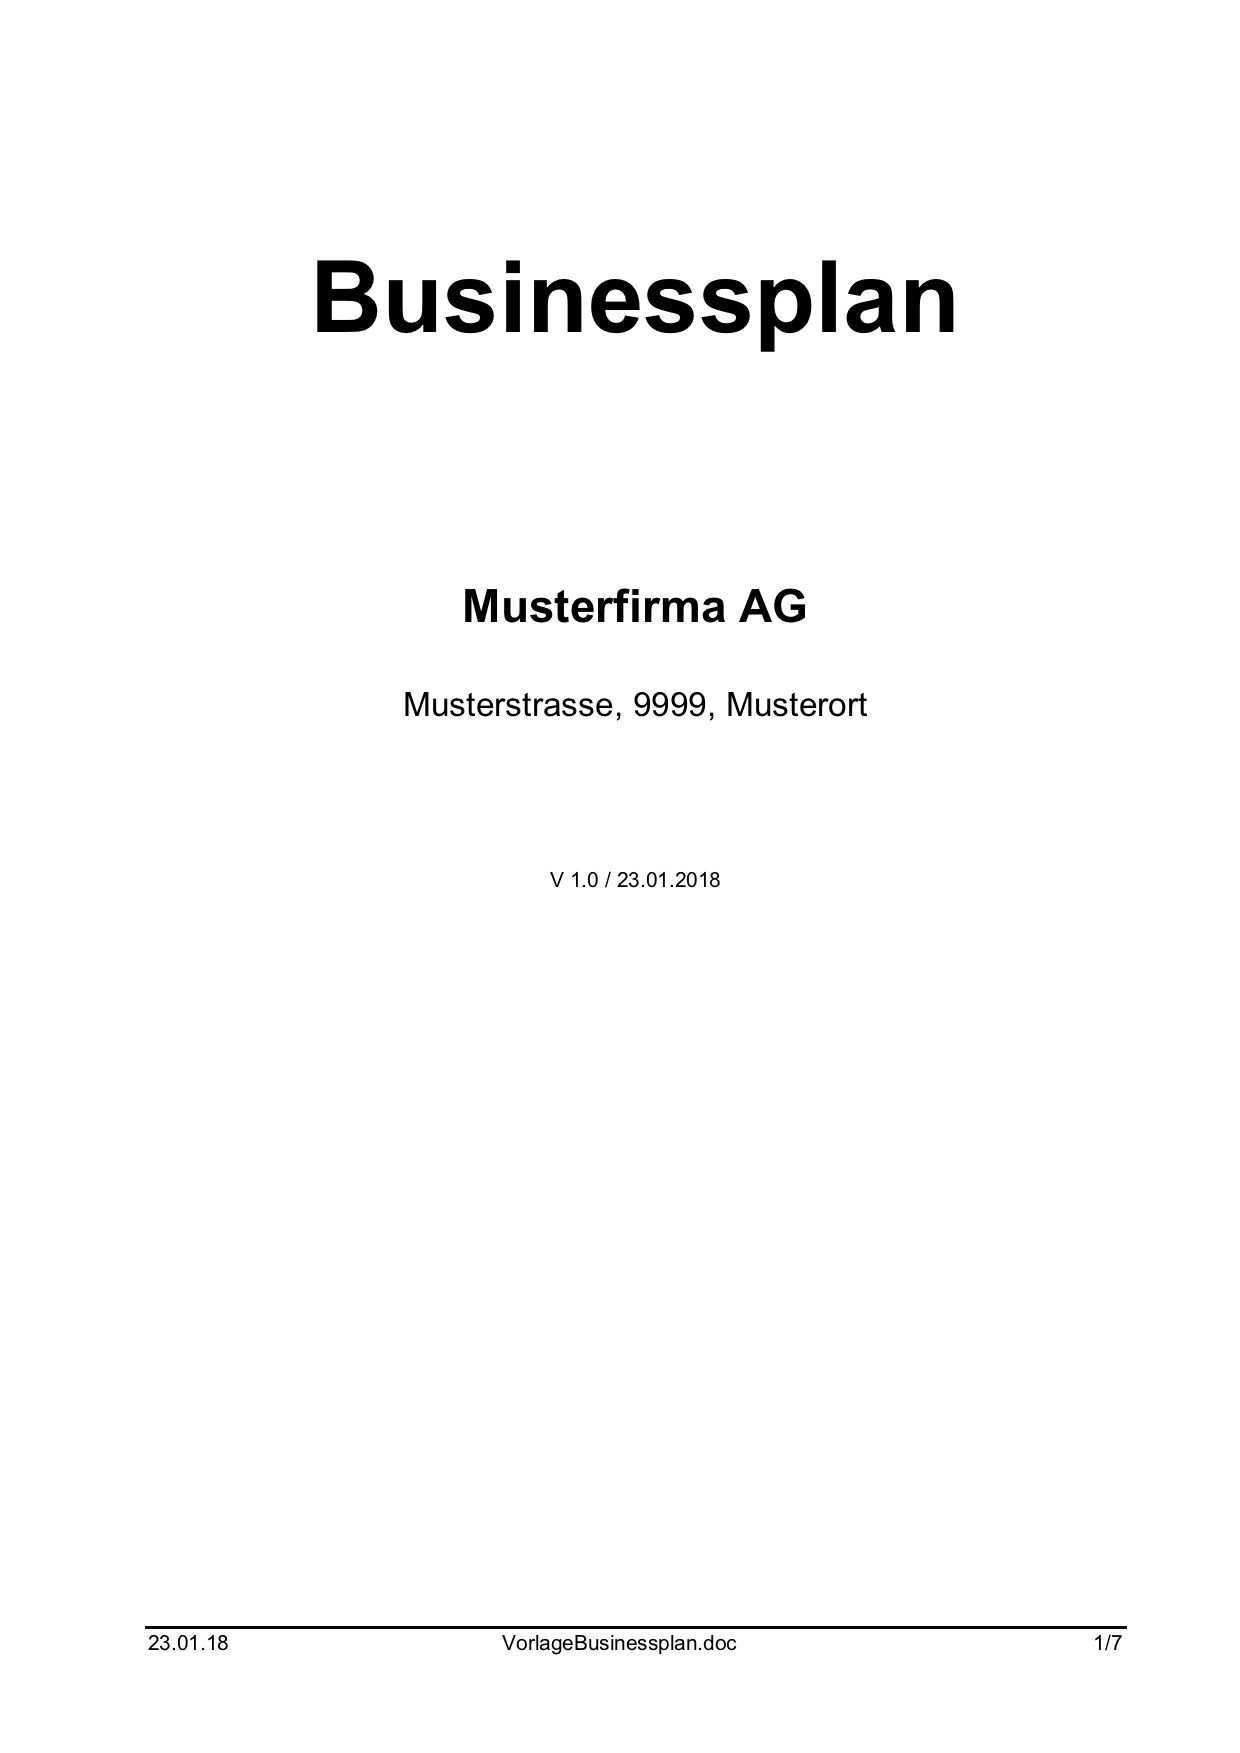 Download Businessplan Vorlage Word Muster Vorlage Ch Businessplan Vorlage Businessplan Vorlagen Word